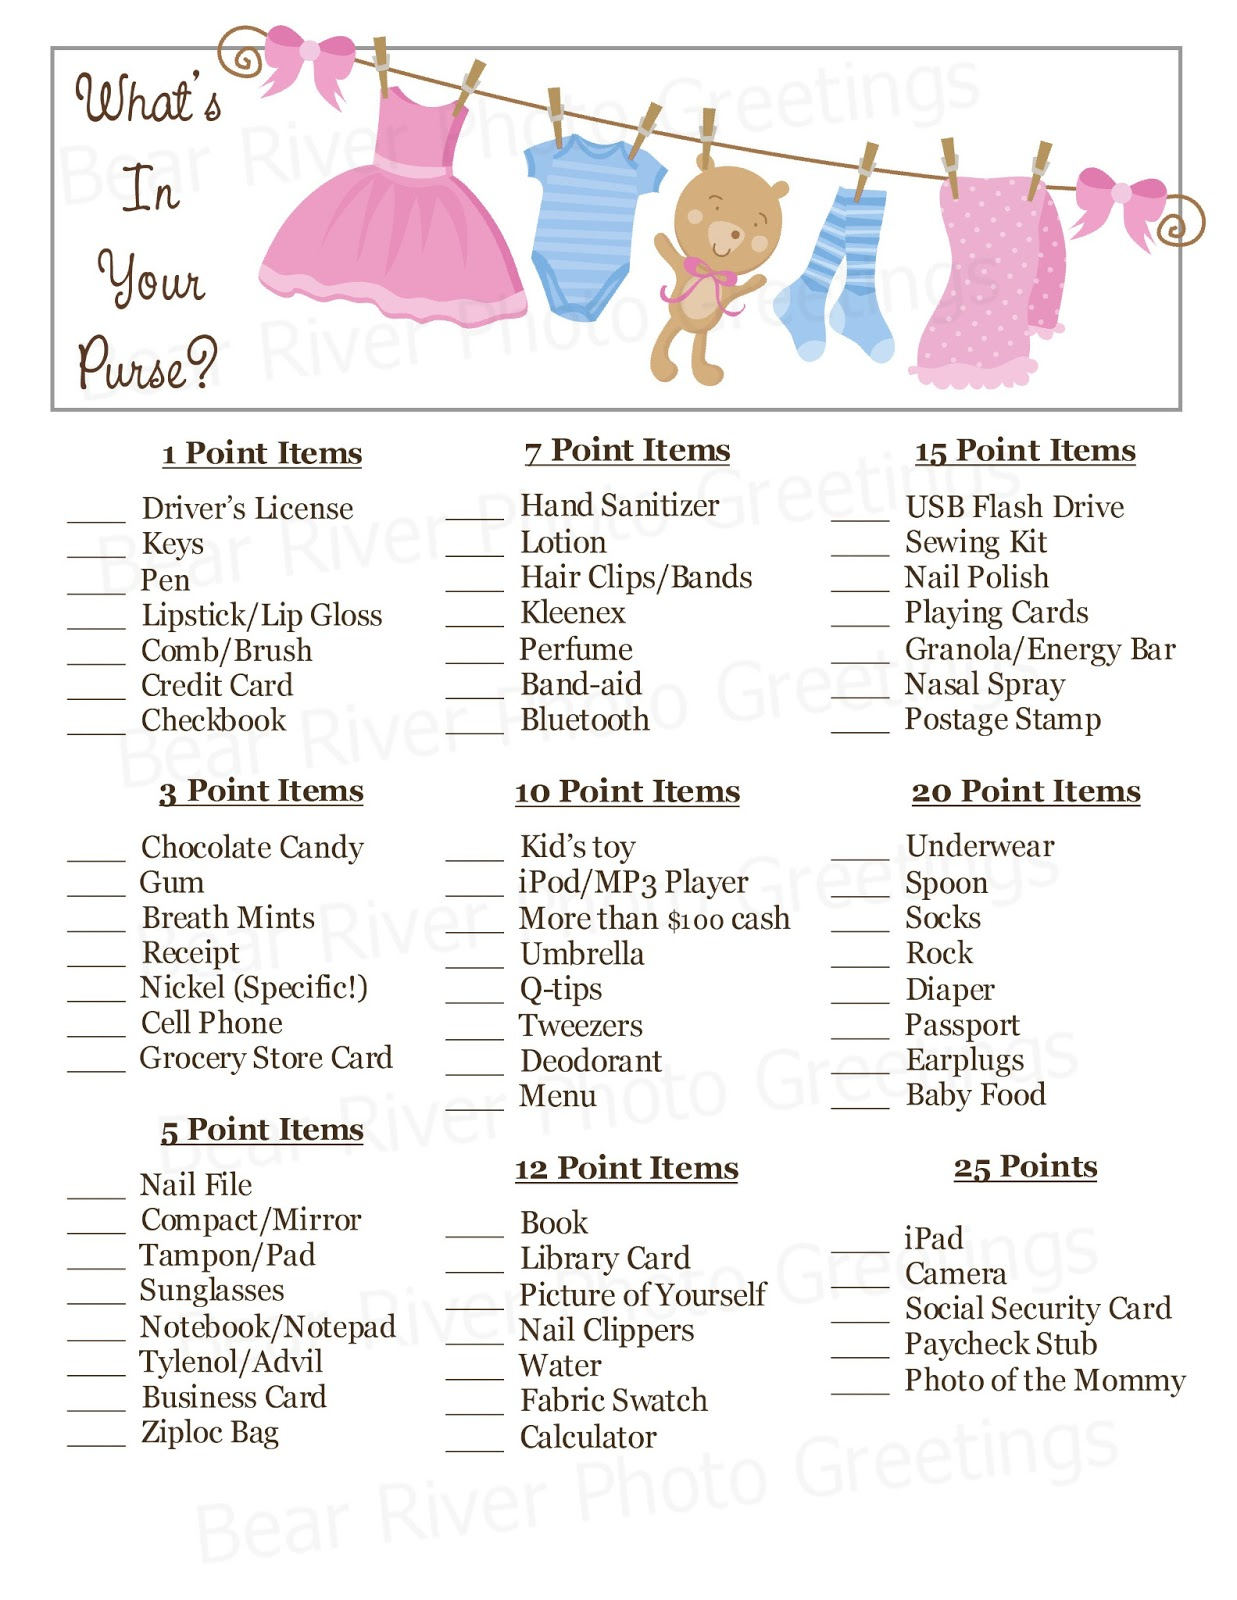 Bear River Photo Greetings: 2013 - Free Printable What's In Your Purse Game